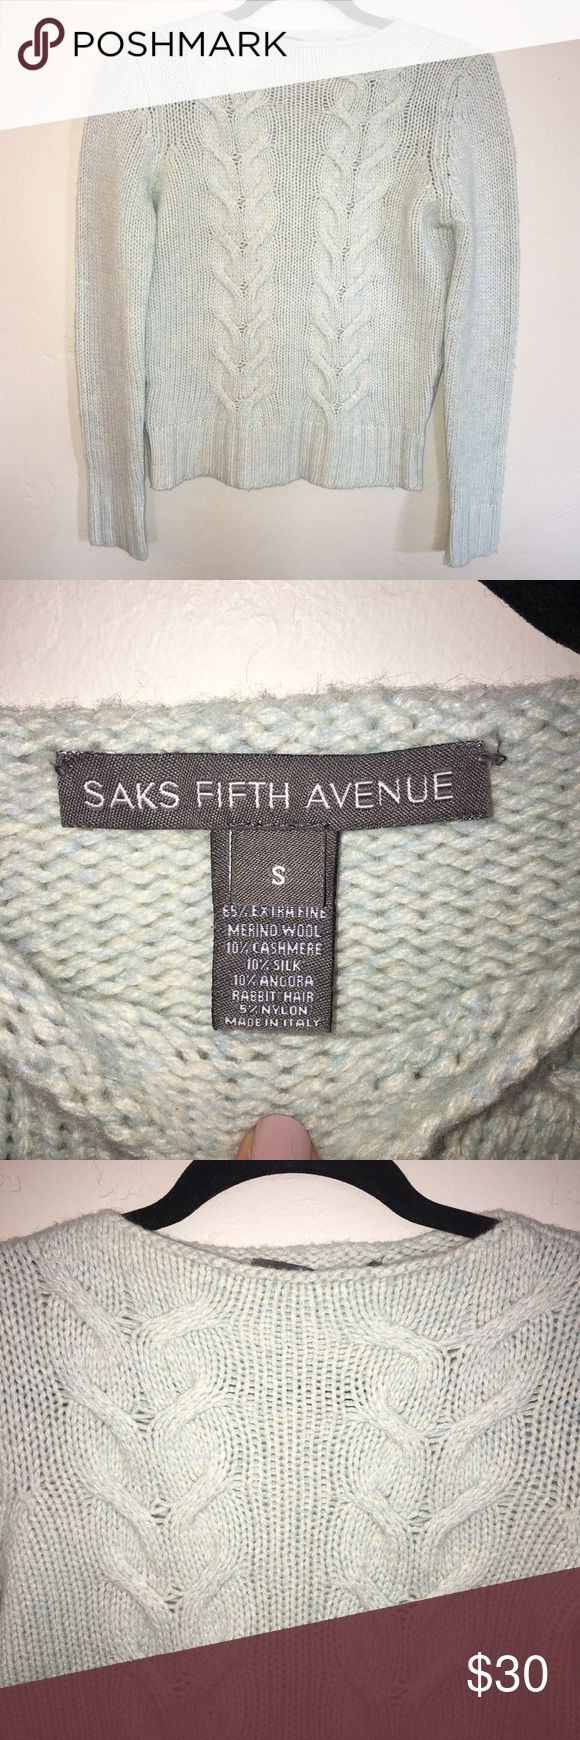 Saks Fifth Avenue Wool Blend Sweater Size Small EUC, light blue cable knit wool, cashmere, and silk blend. Saks Fifth Avenue Sweaters Crew & Scoop Necks